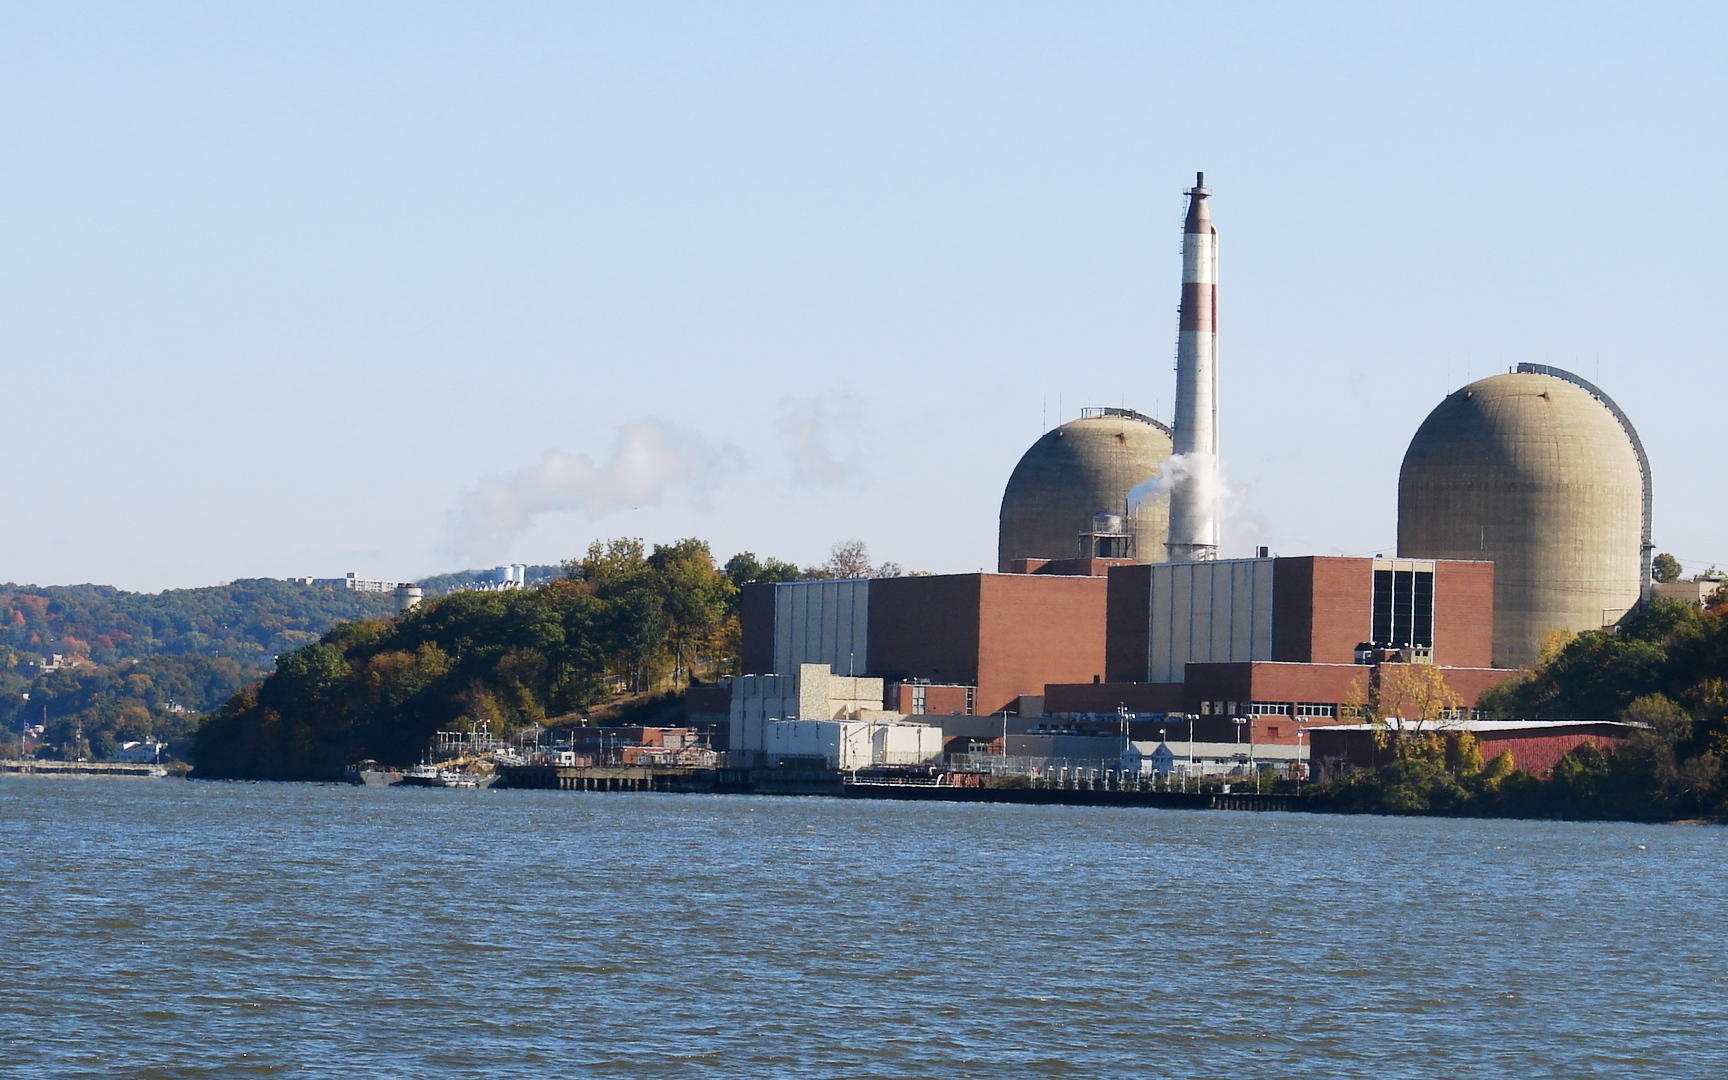 Indian Point Nuclear Power Plant